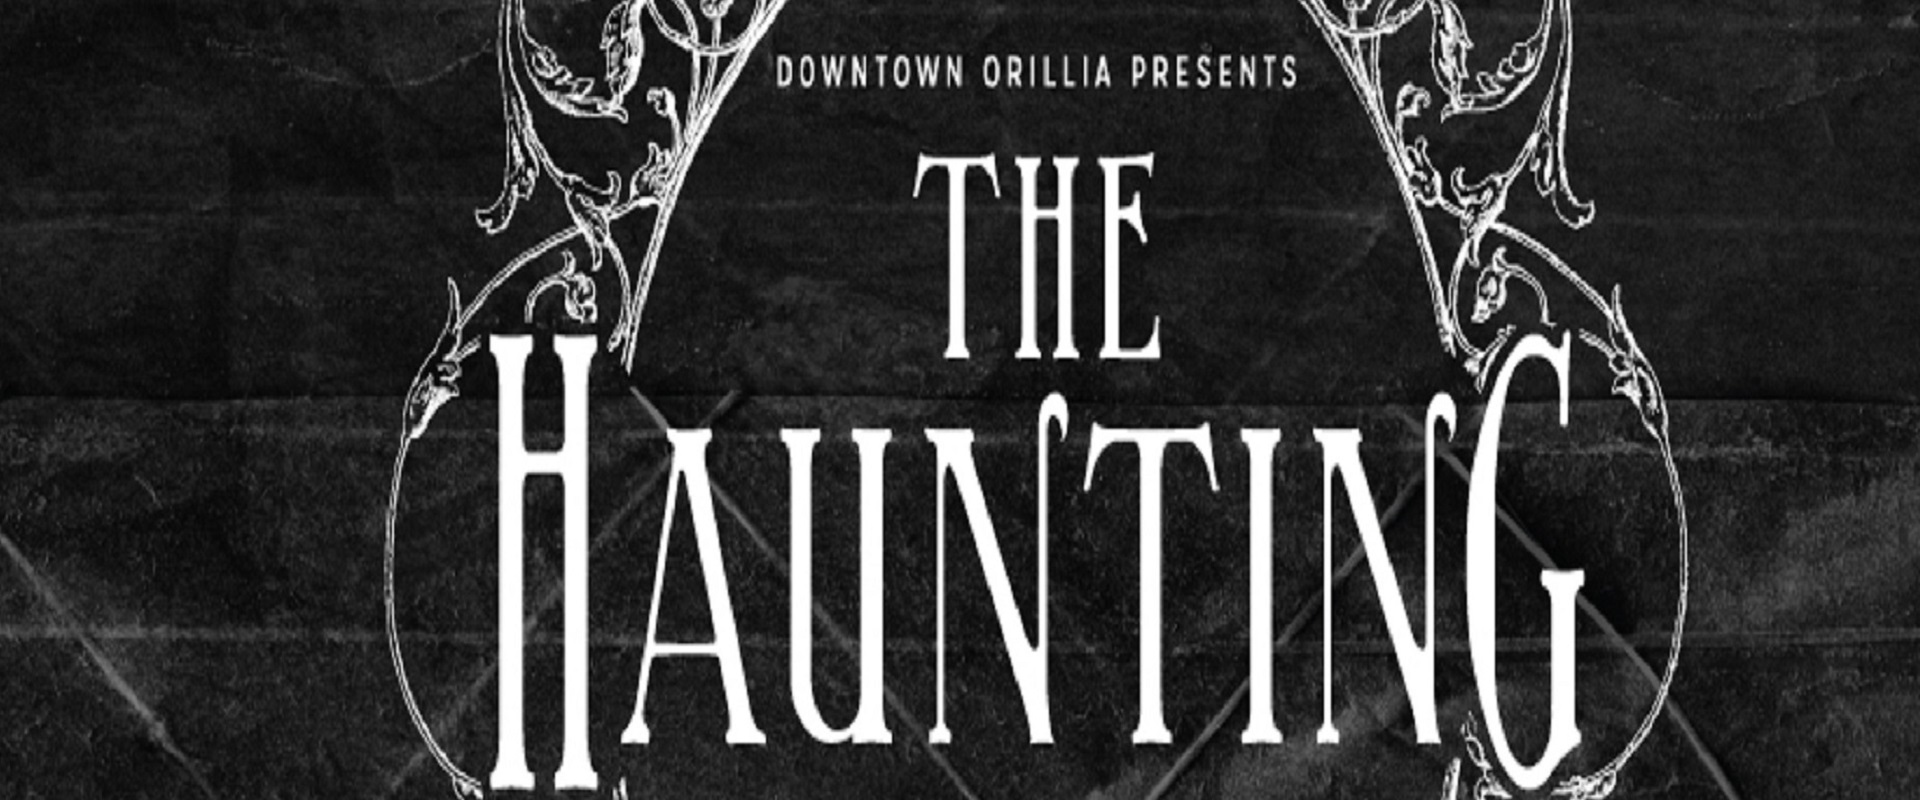 Fb cover haunting resized - THE HAUNTING